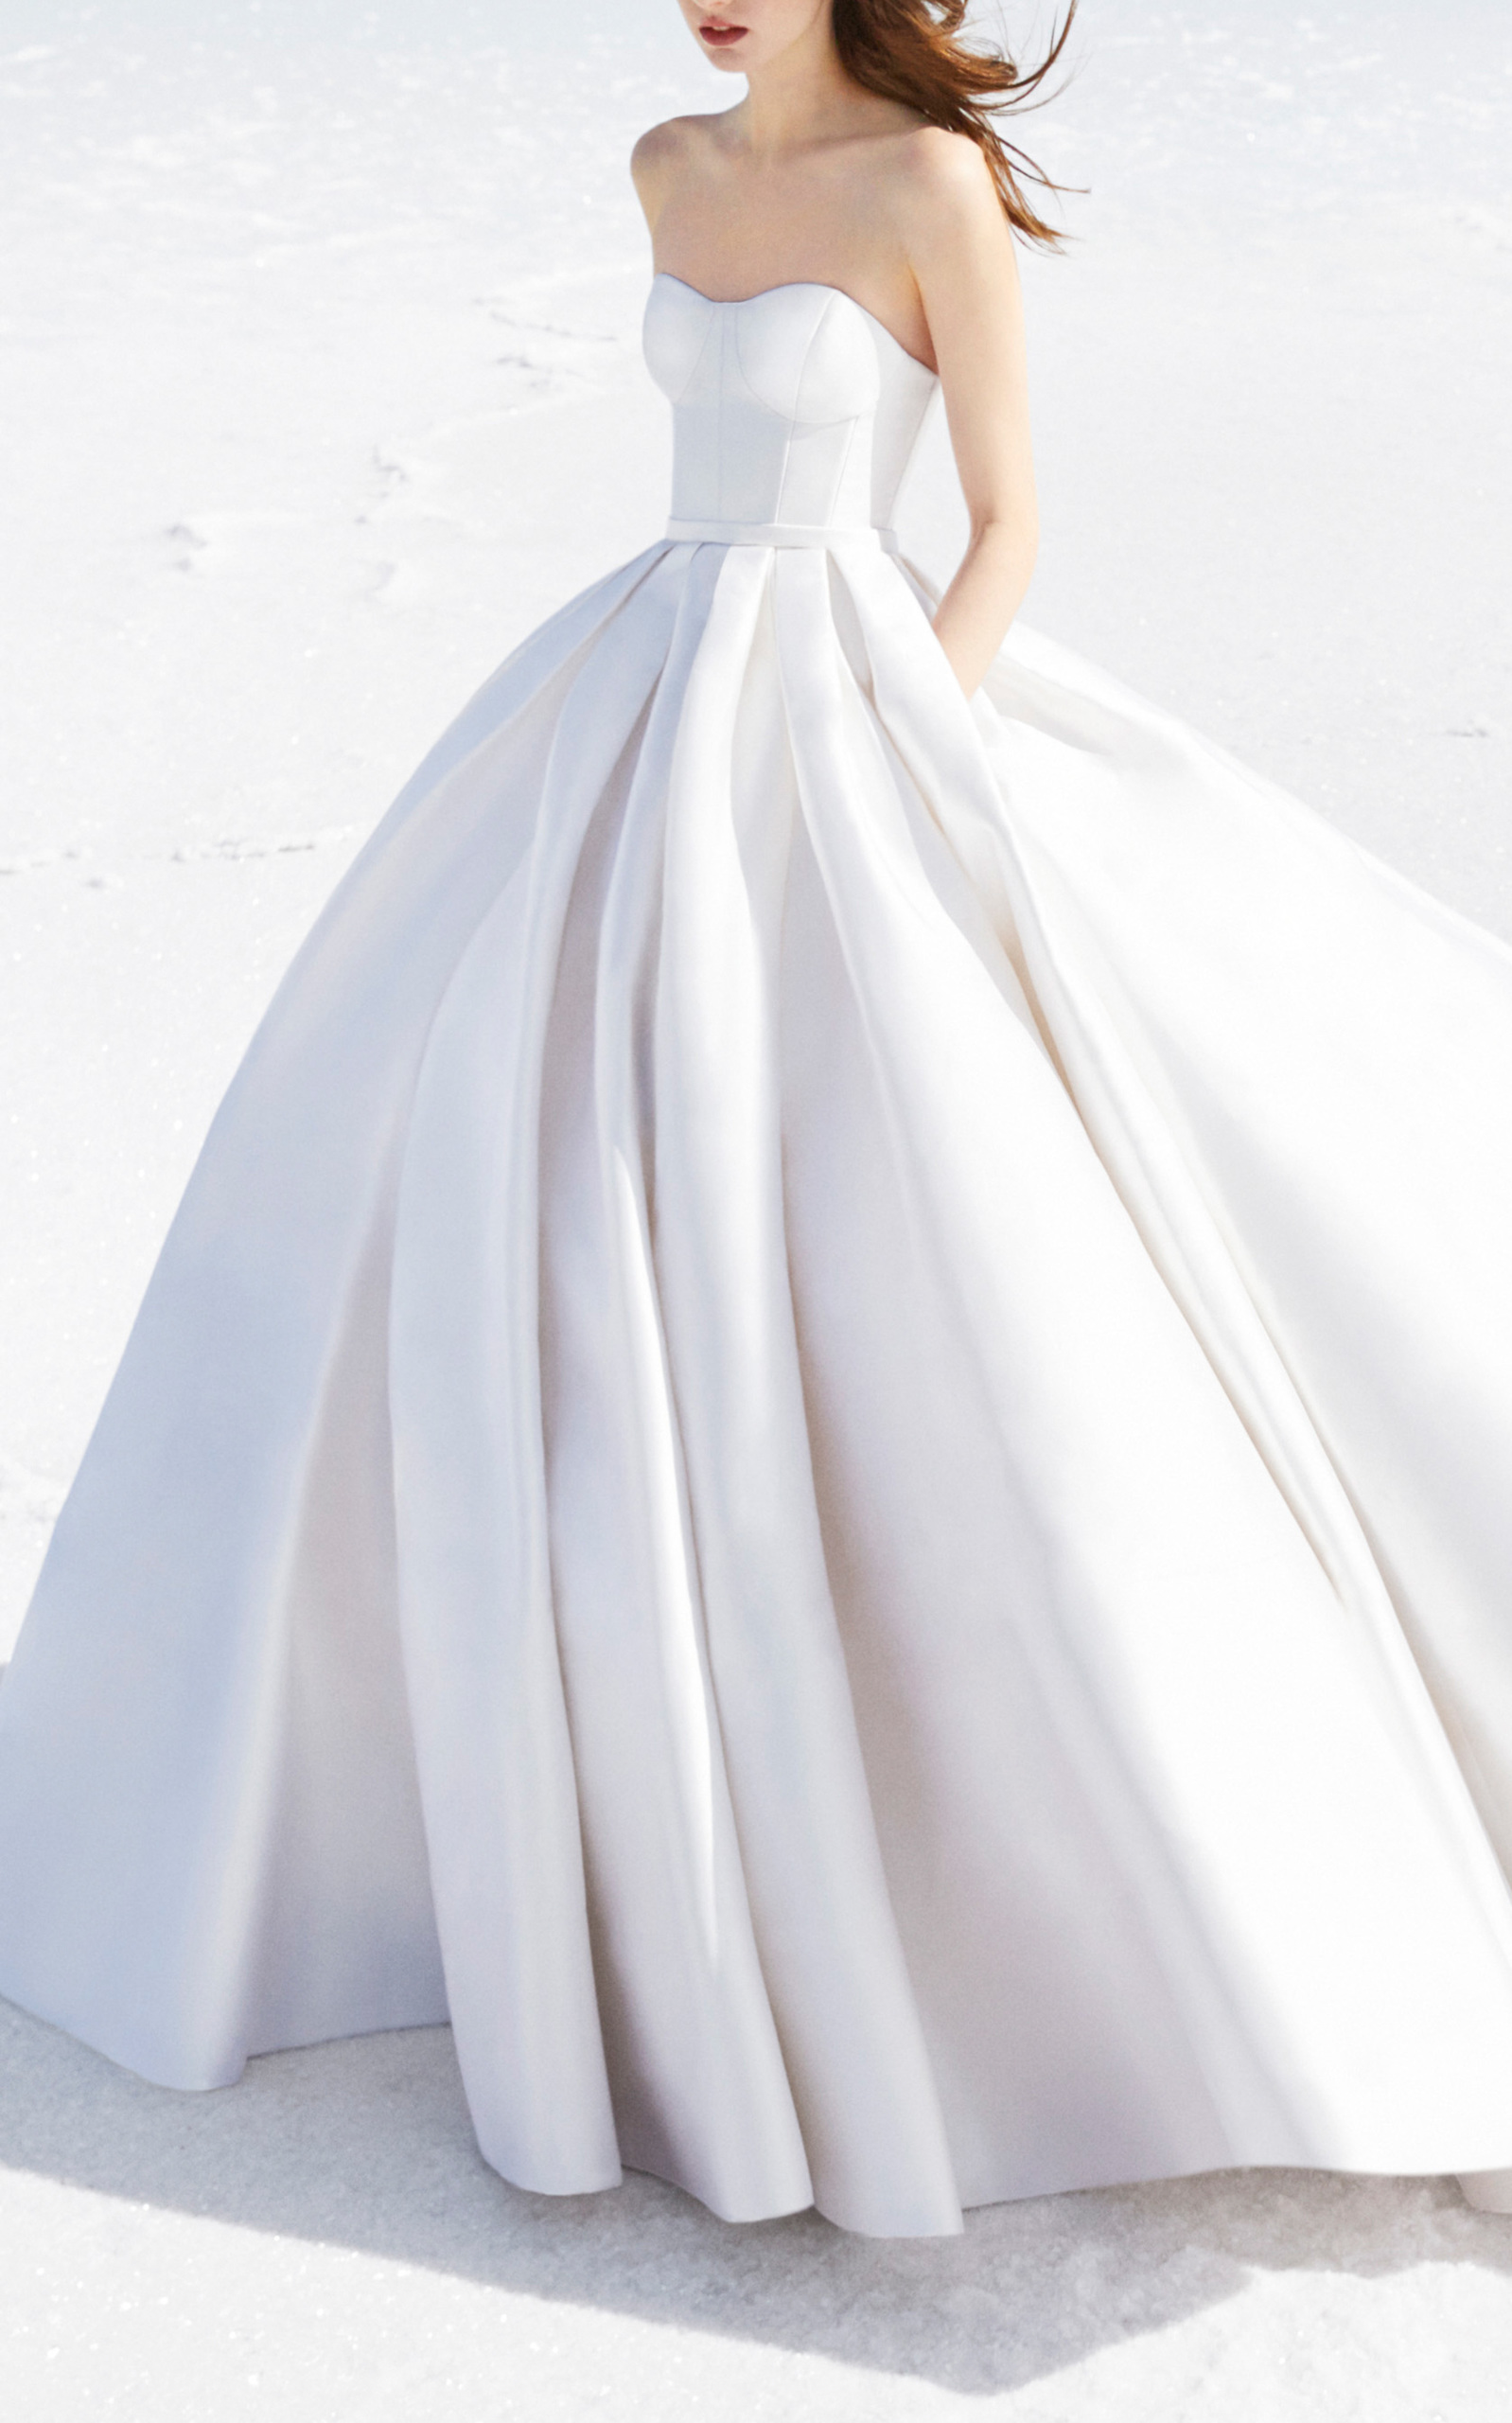 Alex Perry Bride Trunkshow | Moda Operandi